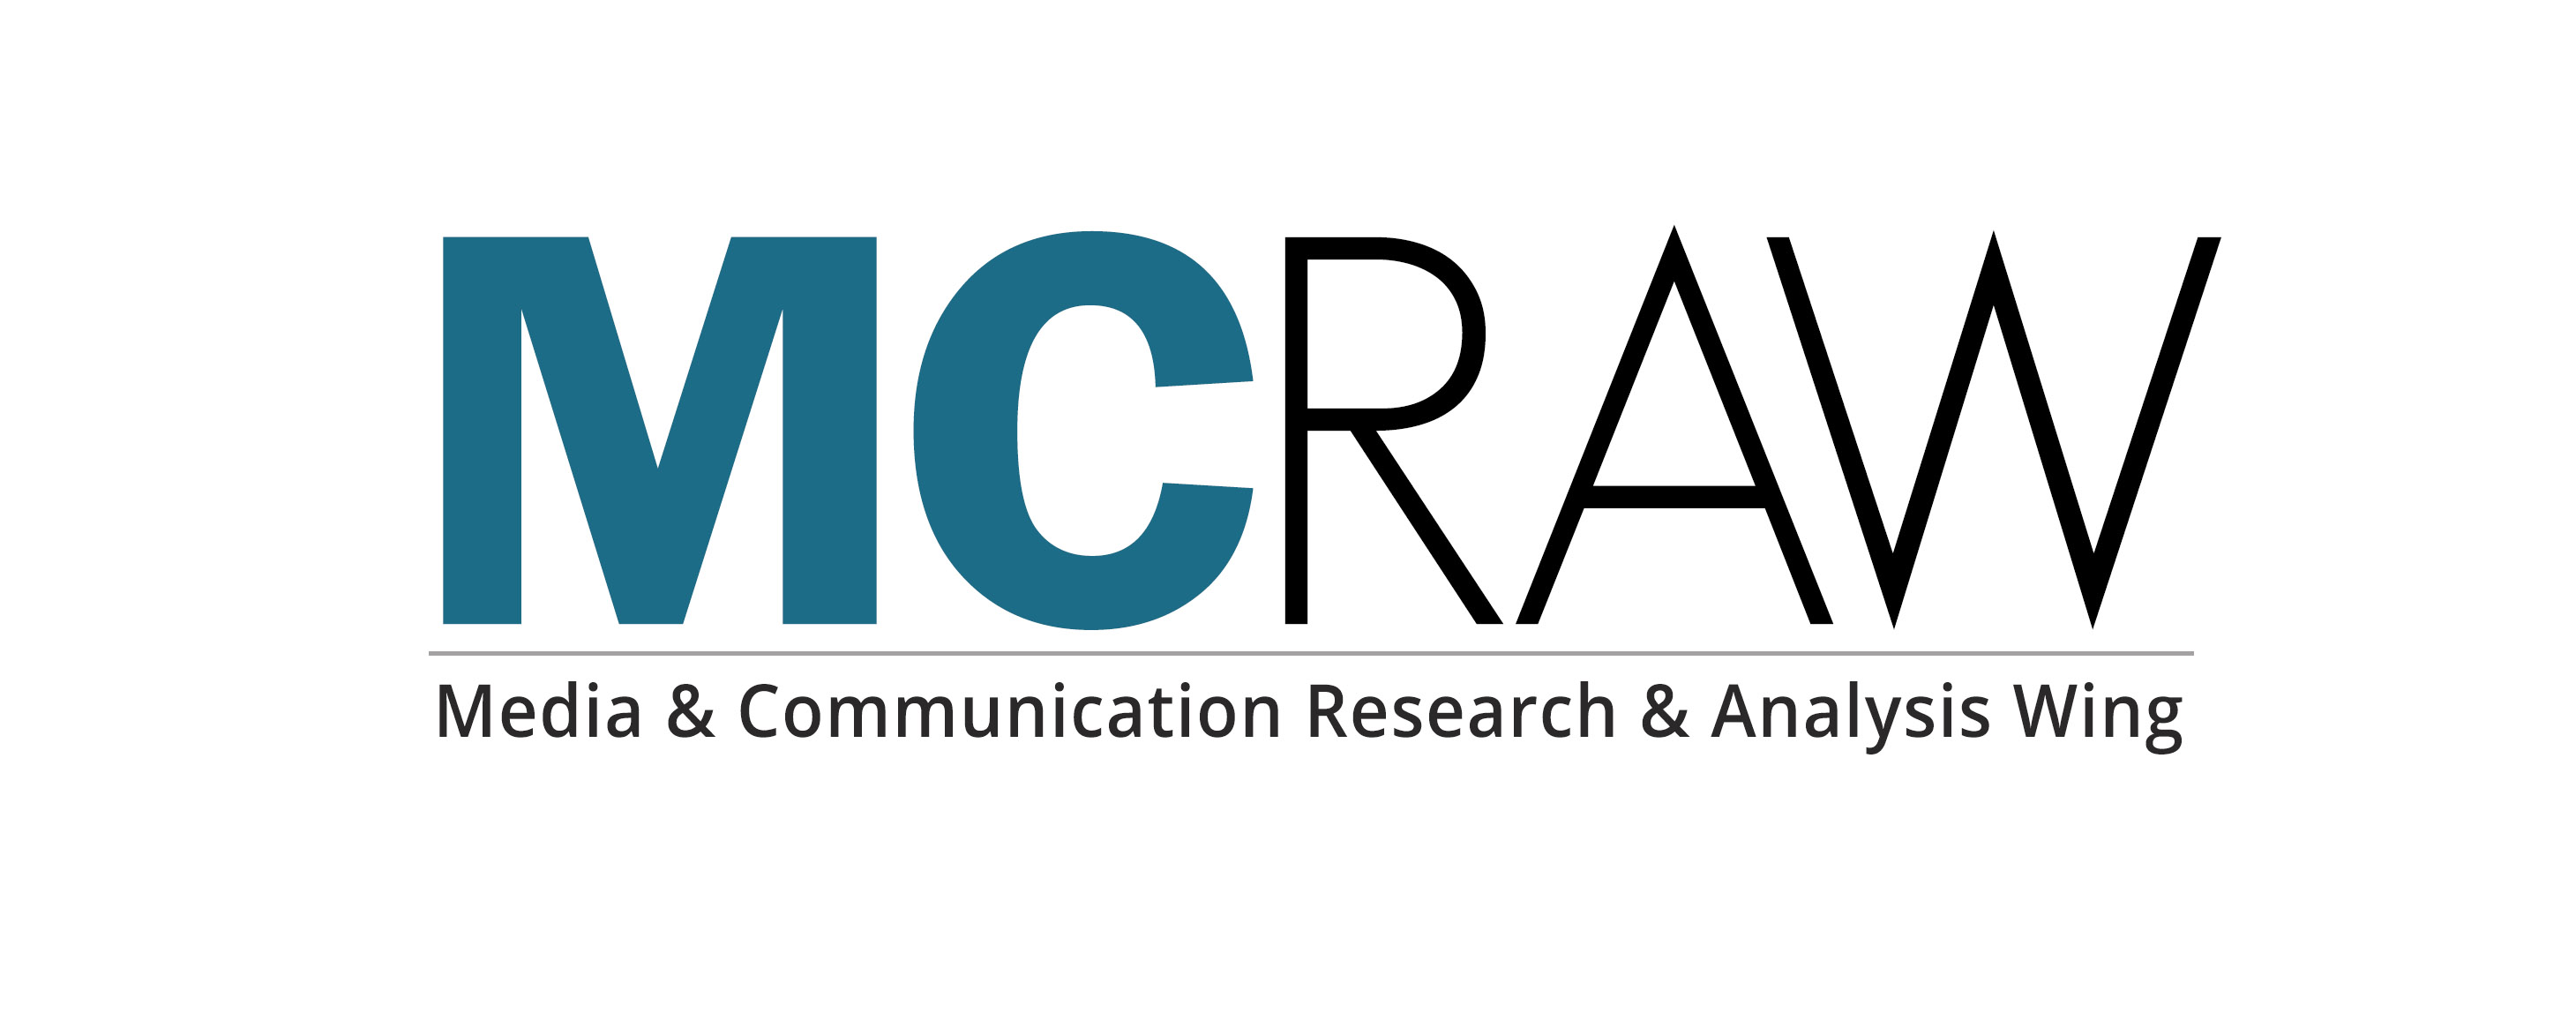 about mcraw media communication research and analysis wing mcraw logo